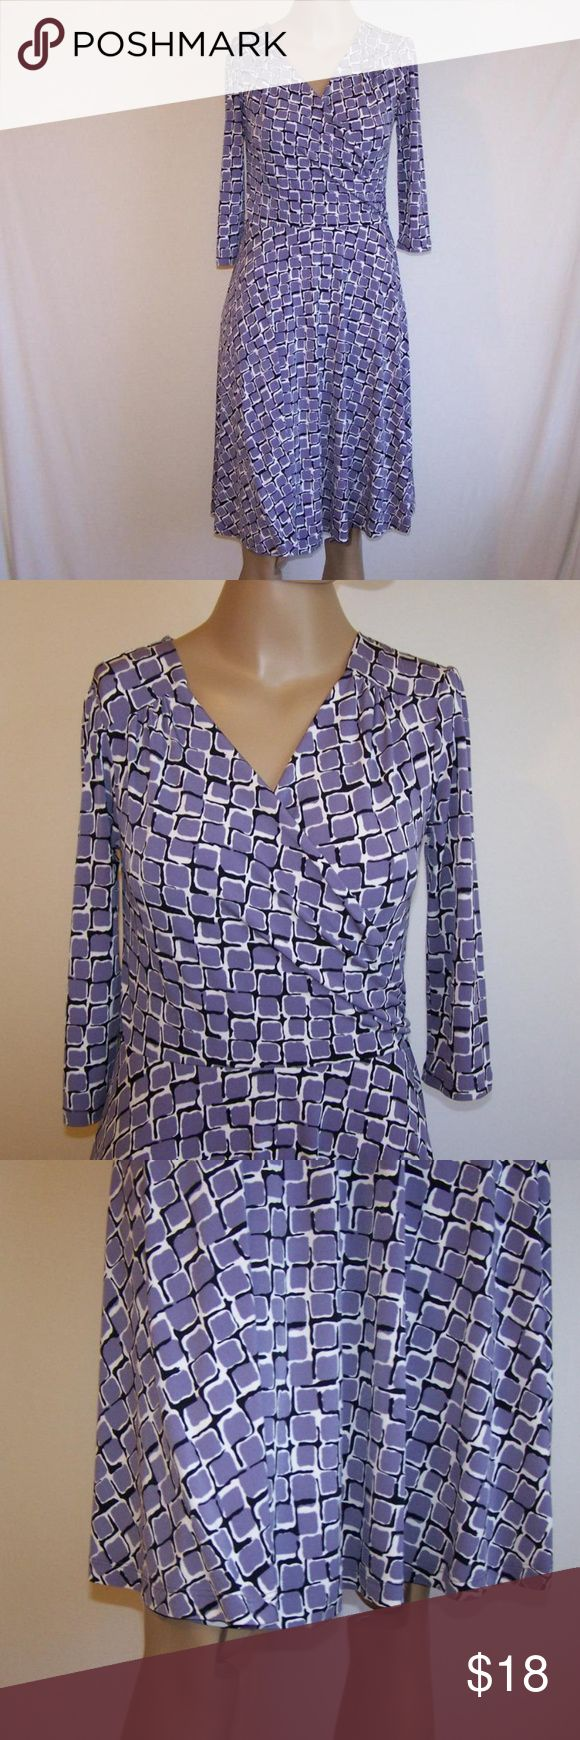 "APT. 9 Dress SP Stretch Animal Print 3/4 Sleeves Apt 9 size small petite dress  3/4 sleeves  cross over  stretch  purple black & white animal print  nice drape to fabric     96% polyester 4% spandex  machine wash     bust 32"" unstretched  waist 32""  length 38""  sleeve length 15 1/2""  nice condition Apt. 9 Dresses"